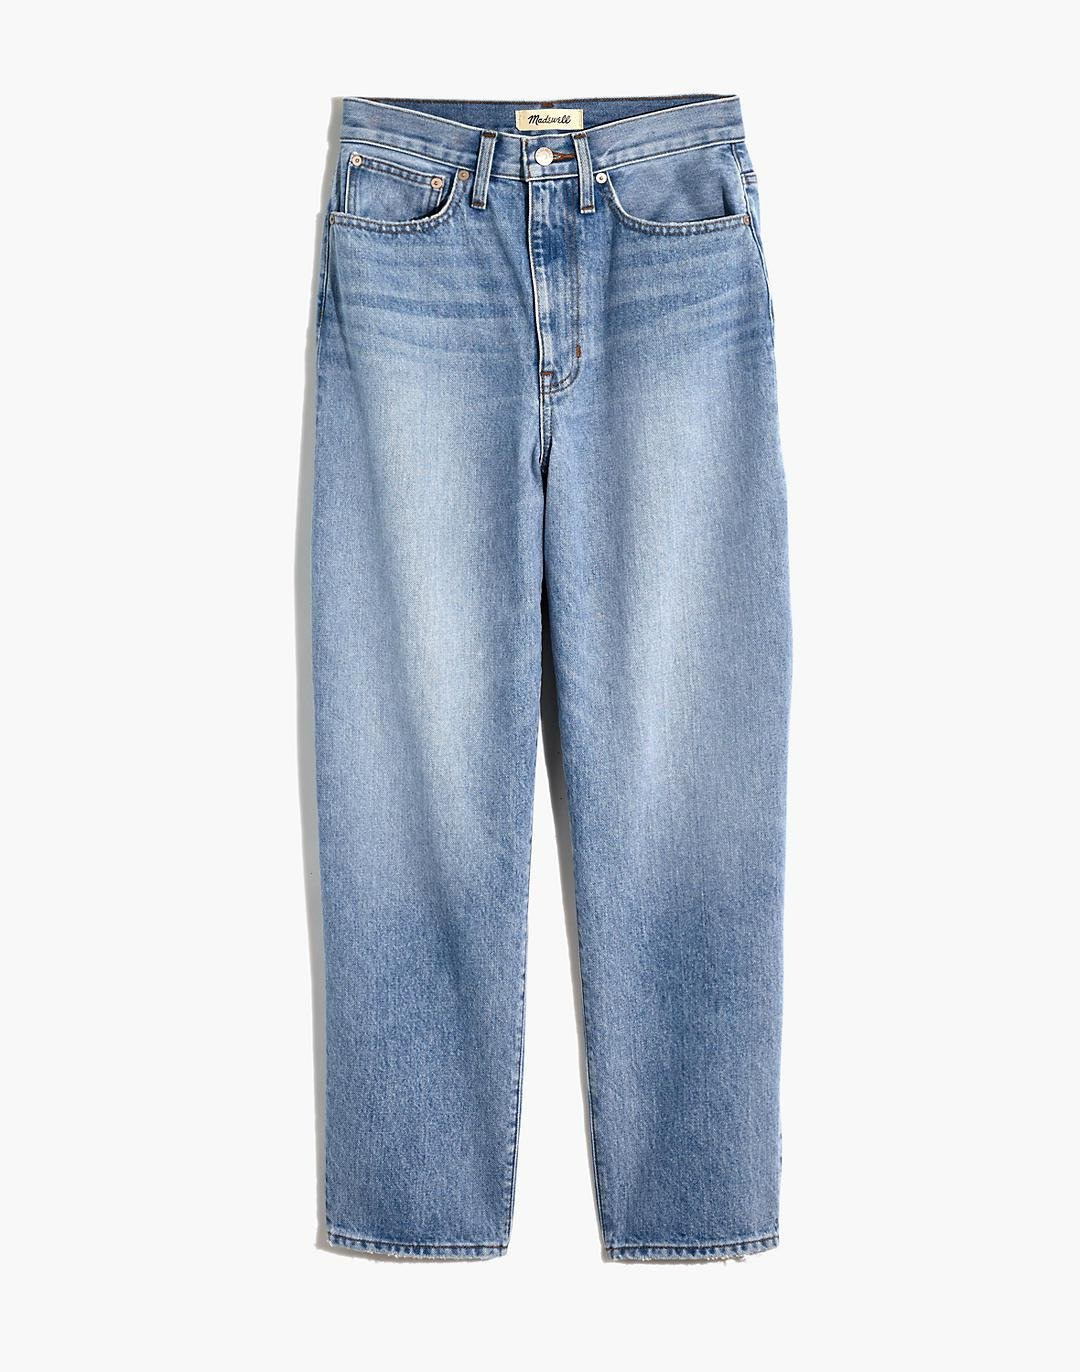 Balloon Jeans in Datewood Wash 4